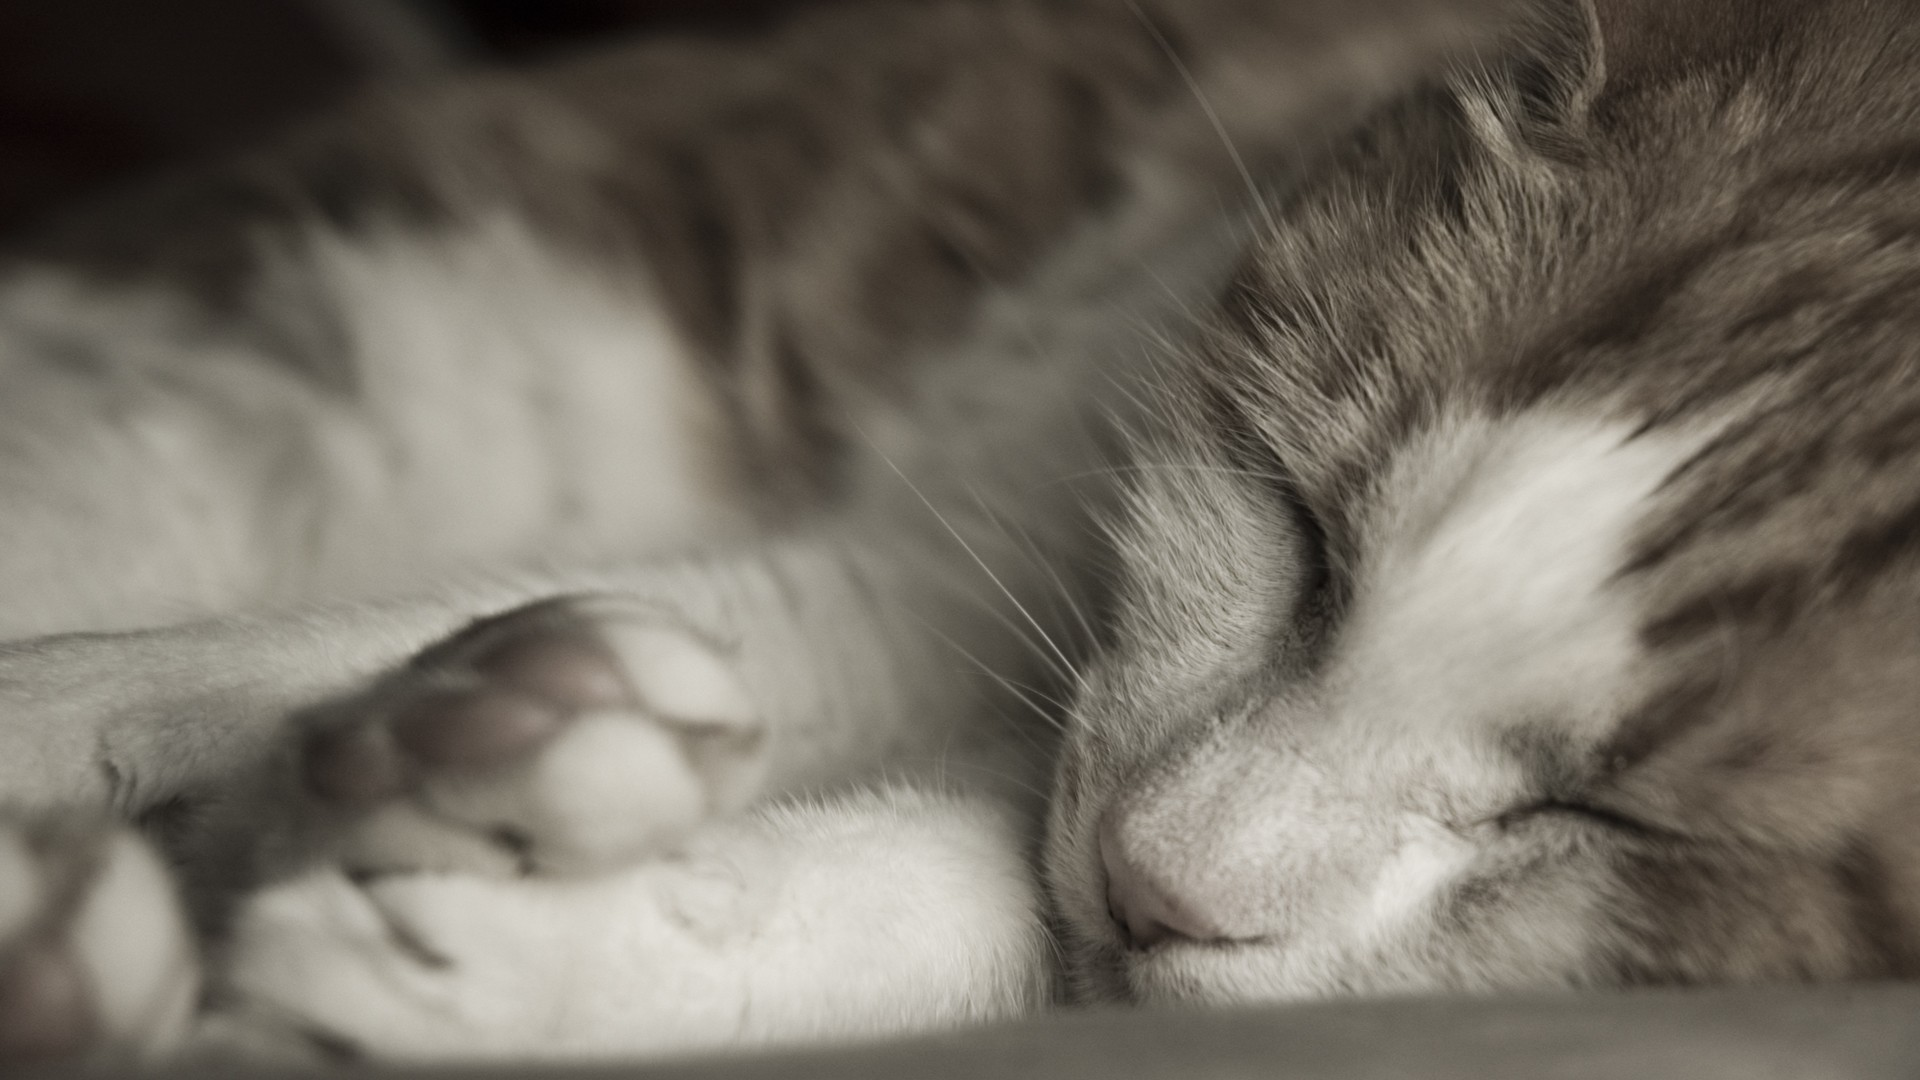 Sleeping Cat Close Up Wallpaper